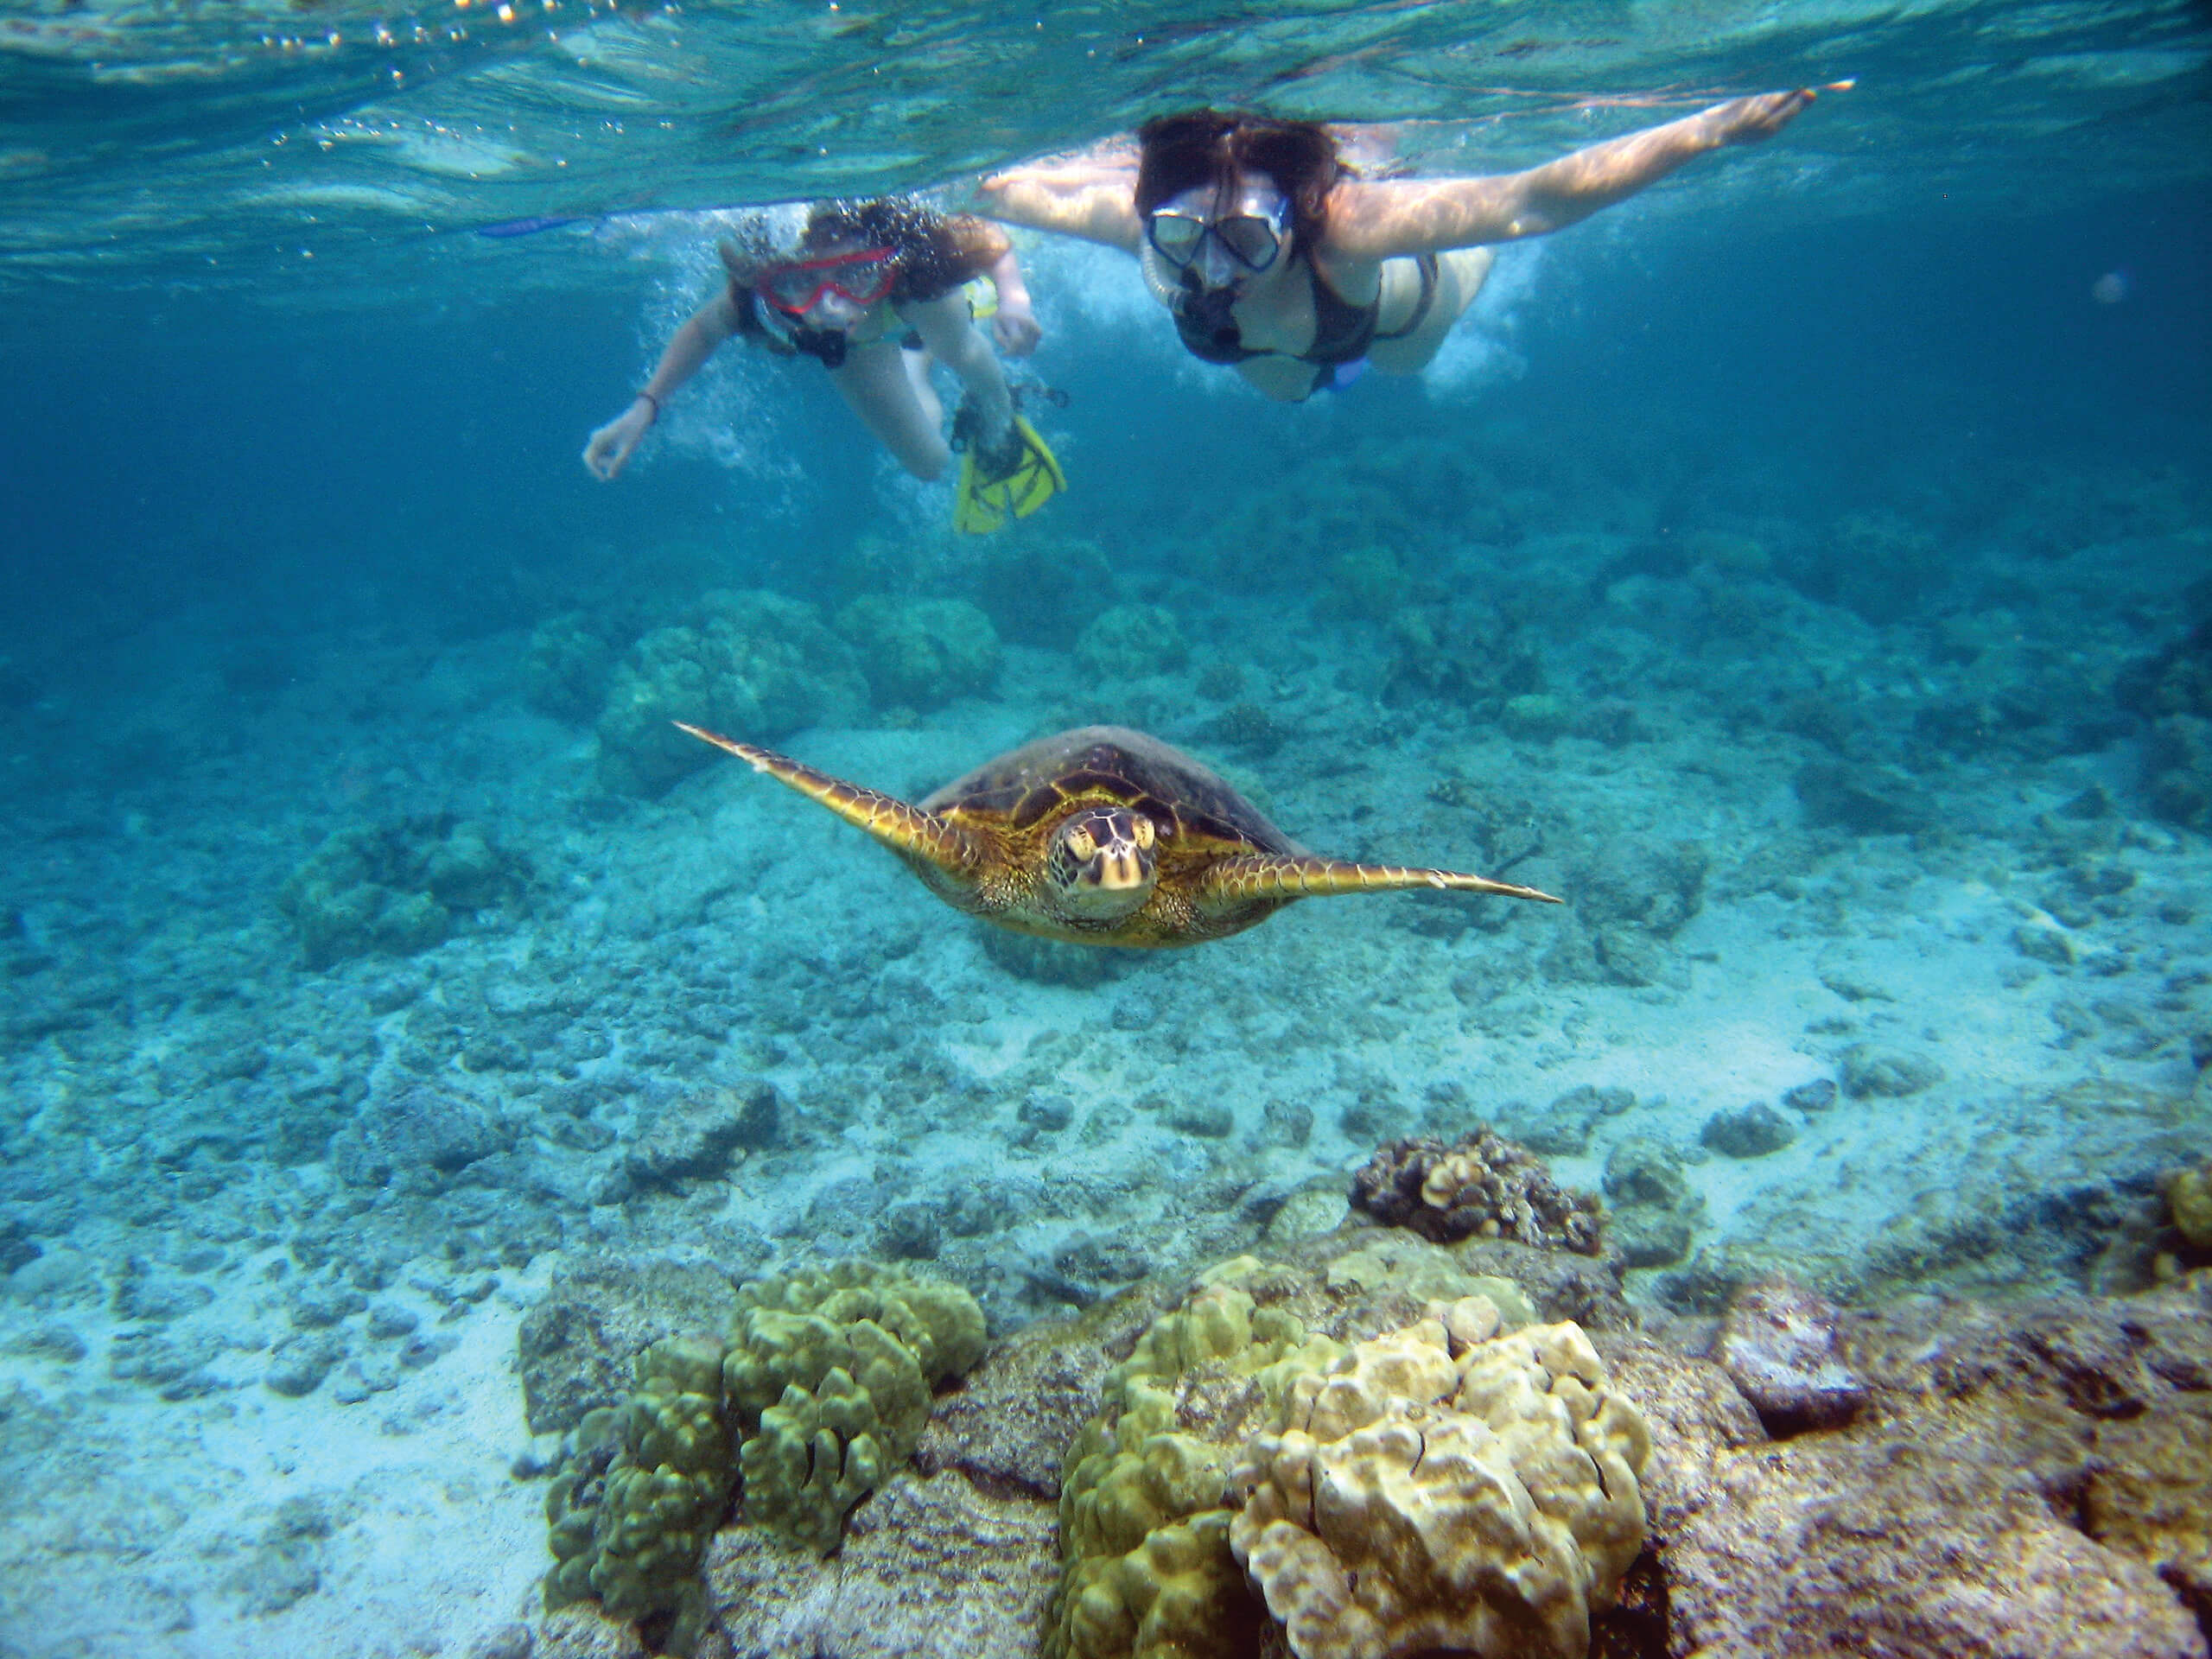 Snorkelers_with_sea_turtle-cmyk